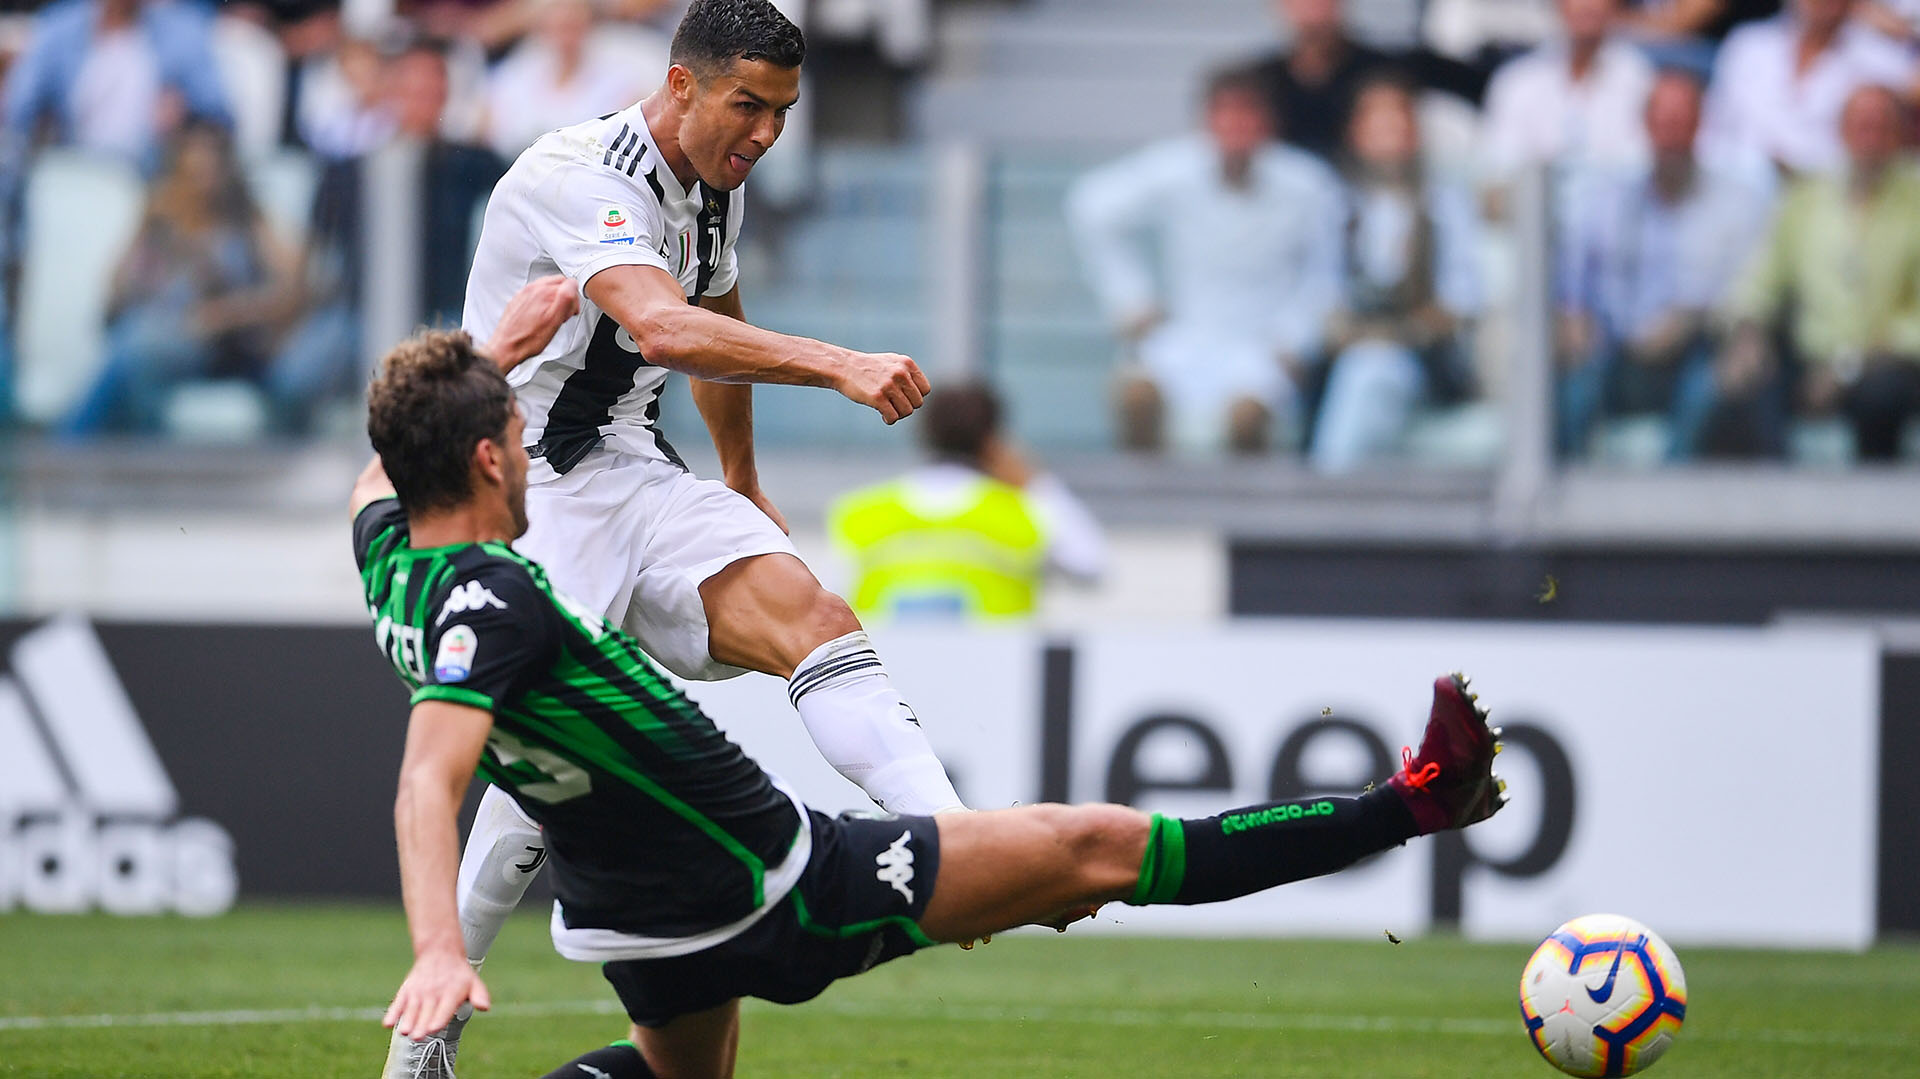 Juventus' Portuguese forward Cristiano Ronaldo shoots to score his second goal during the Italian Serie A football match Juventus vs Sassuolo on September 16, 2018 at the Juventus stadium in Turin. / AFP PHOTO / Marco BERTORELLO